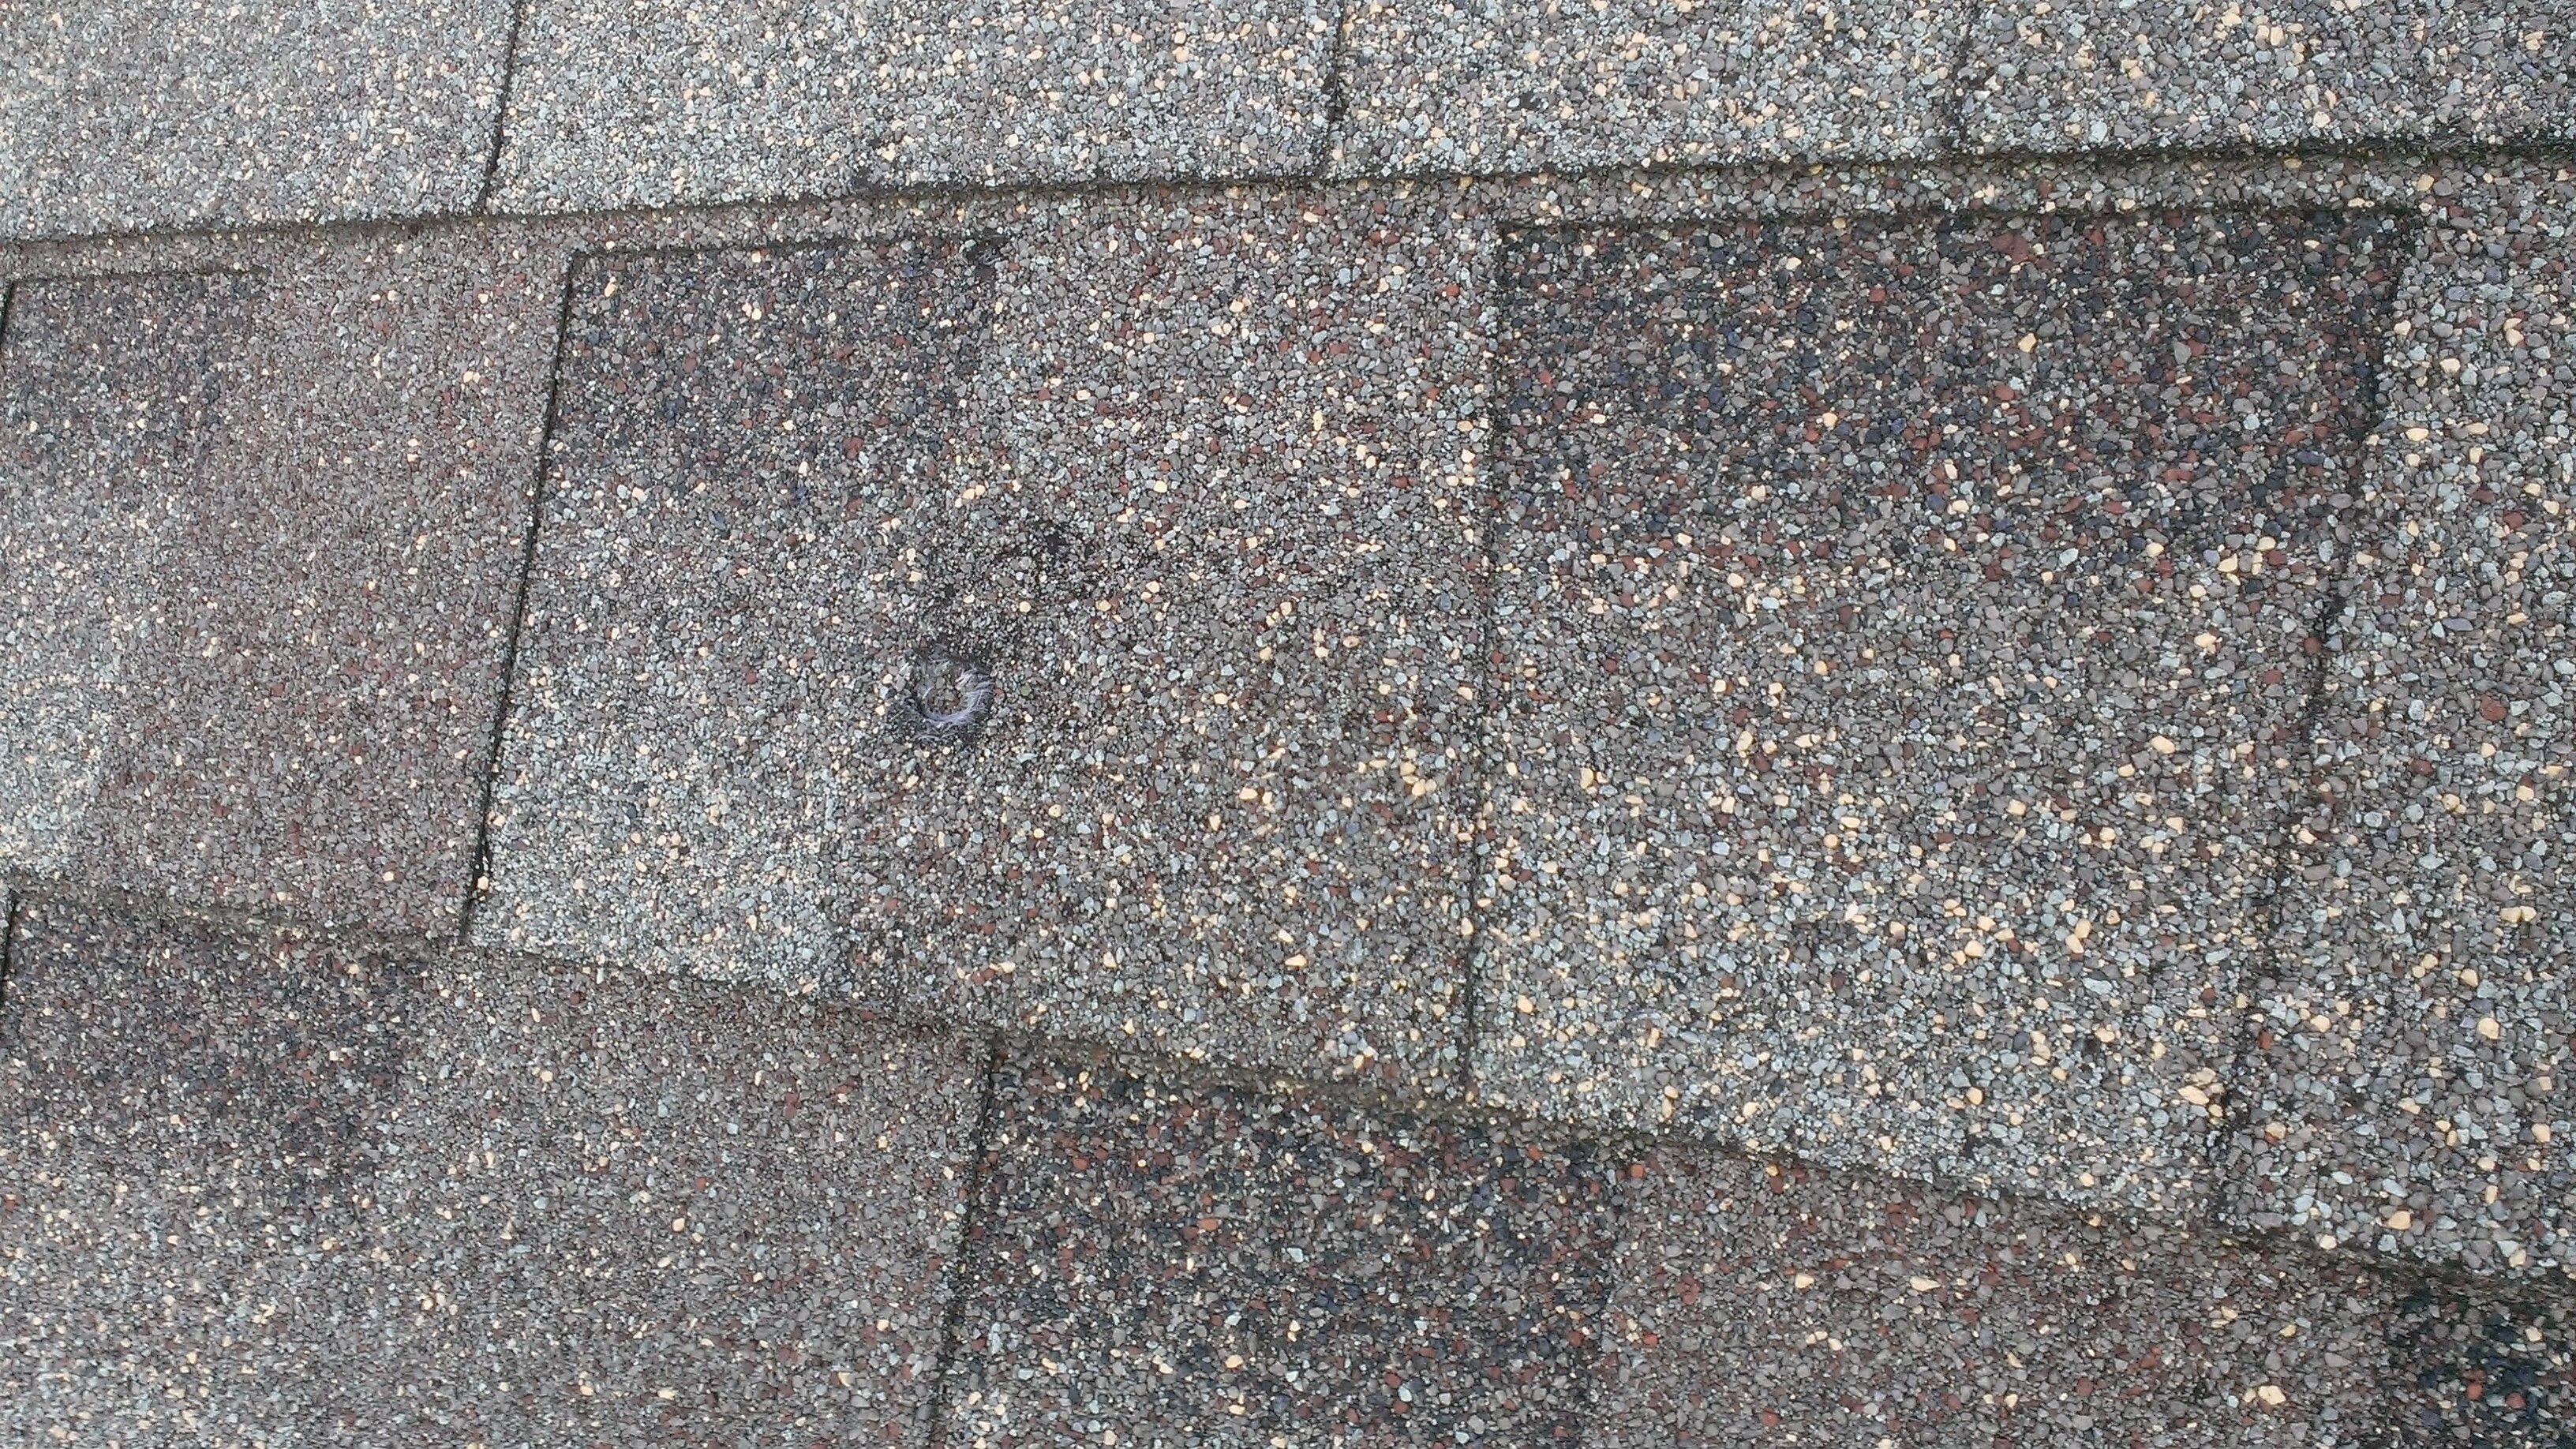 Roof Shingles Damaged By Hail You Can See This Hail Hit Quite Hard It Went Through Pretty Deep Into The Shingle Roof Shingles Roofing Roof